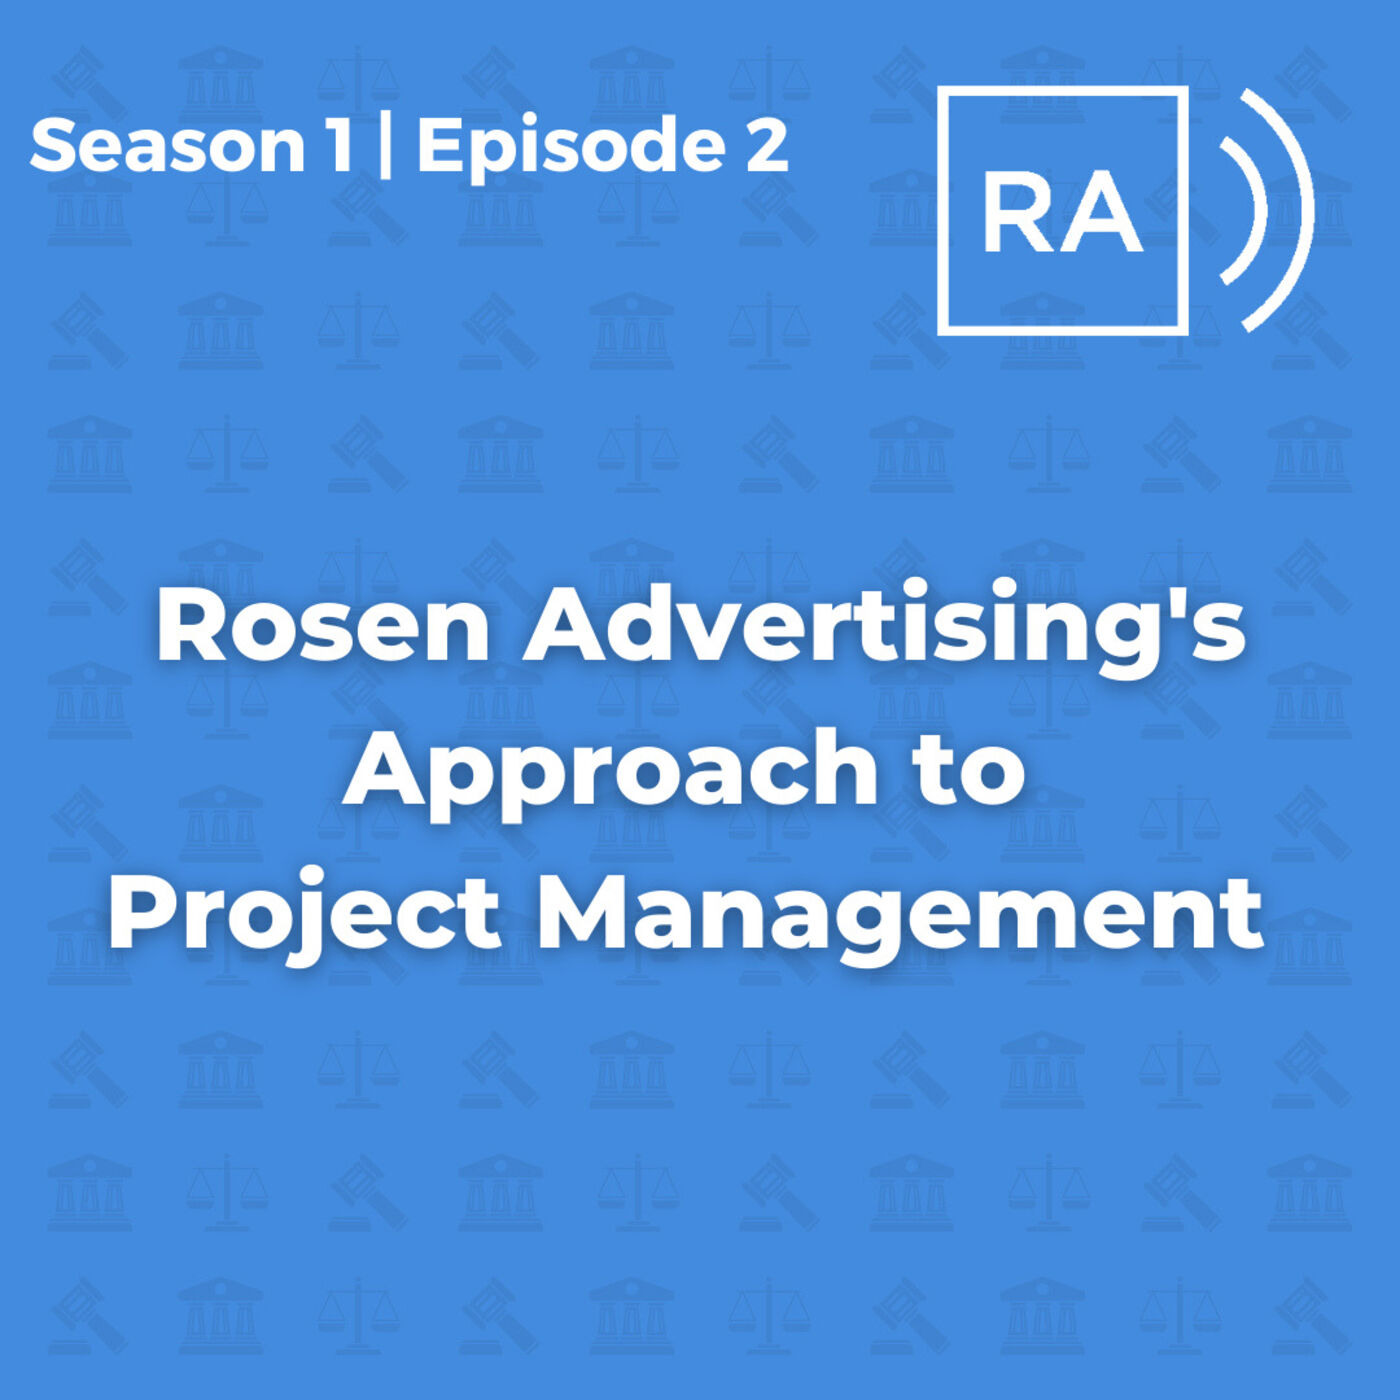 Rosen Advertising's Approach to Project Management